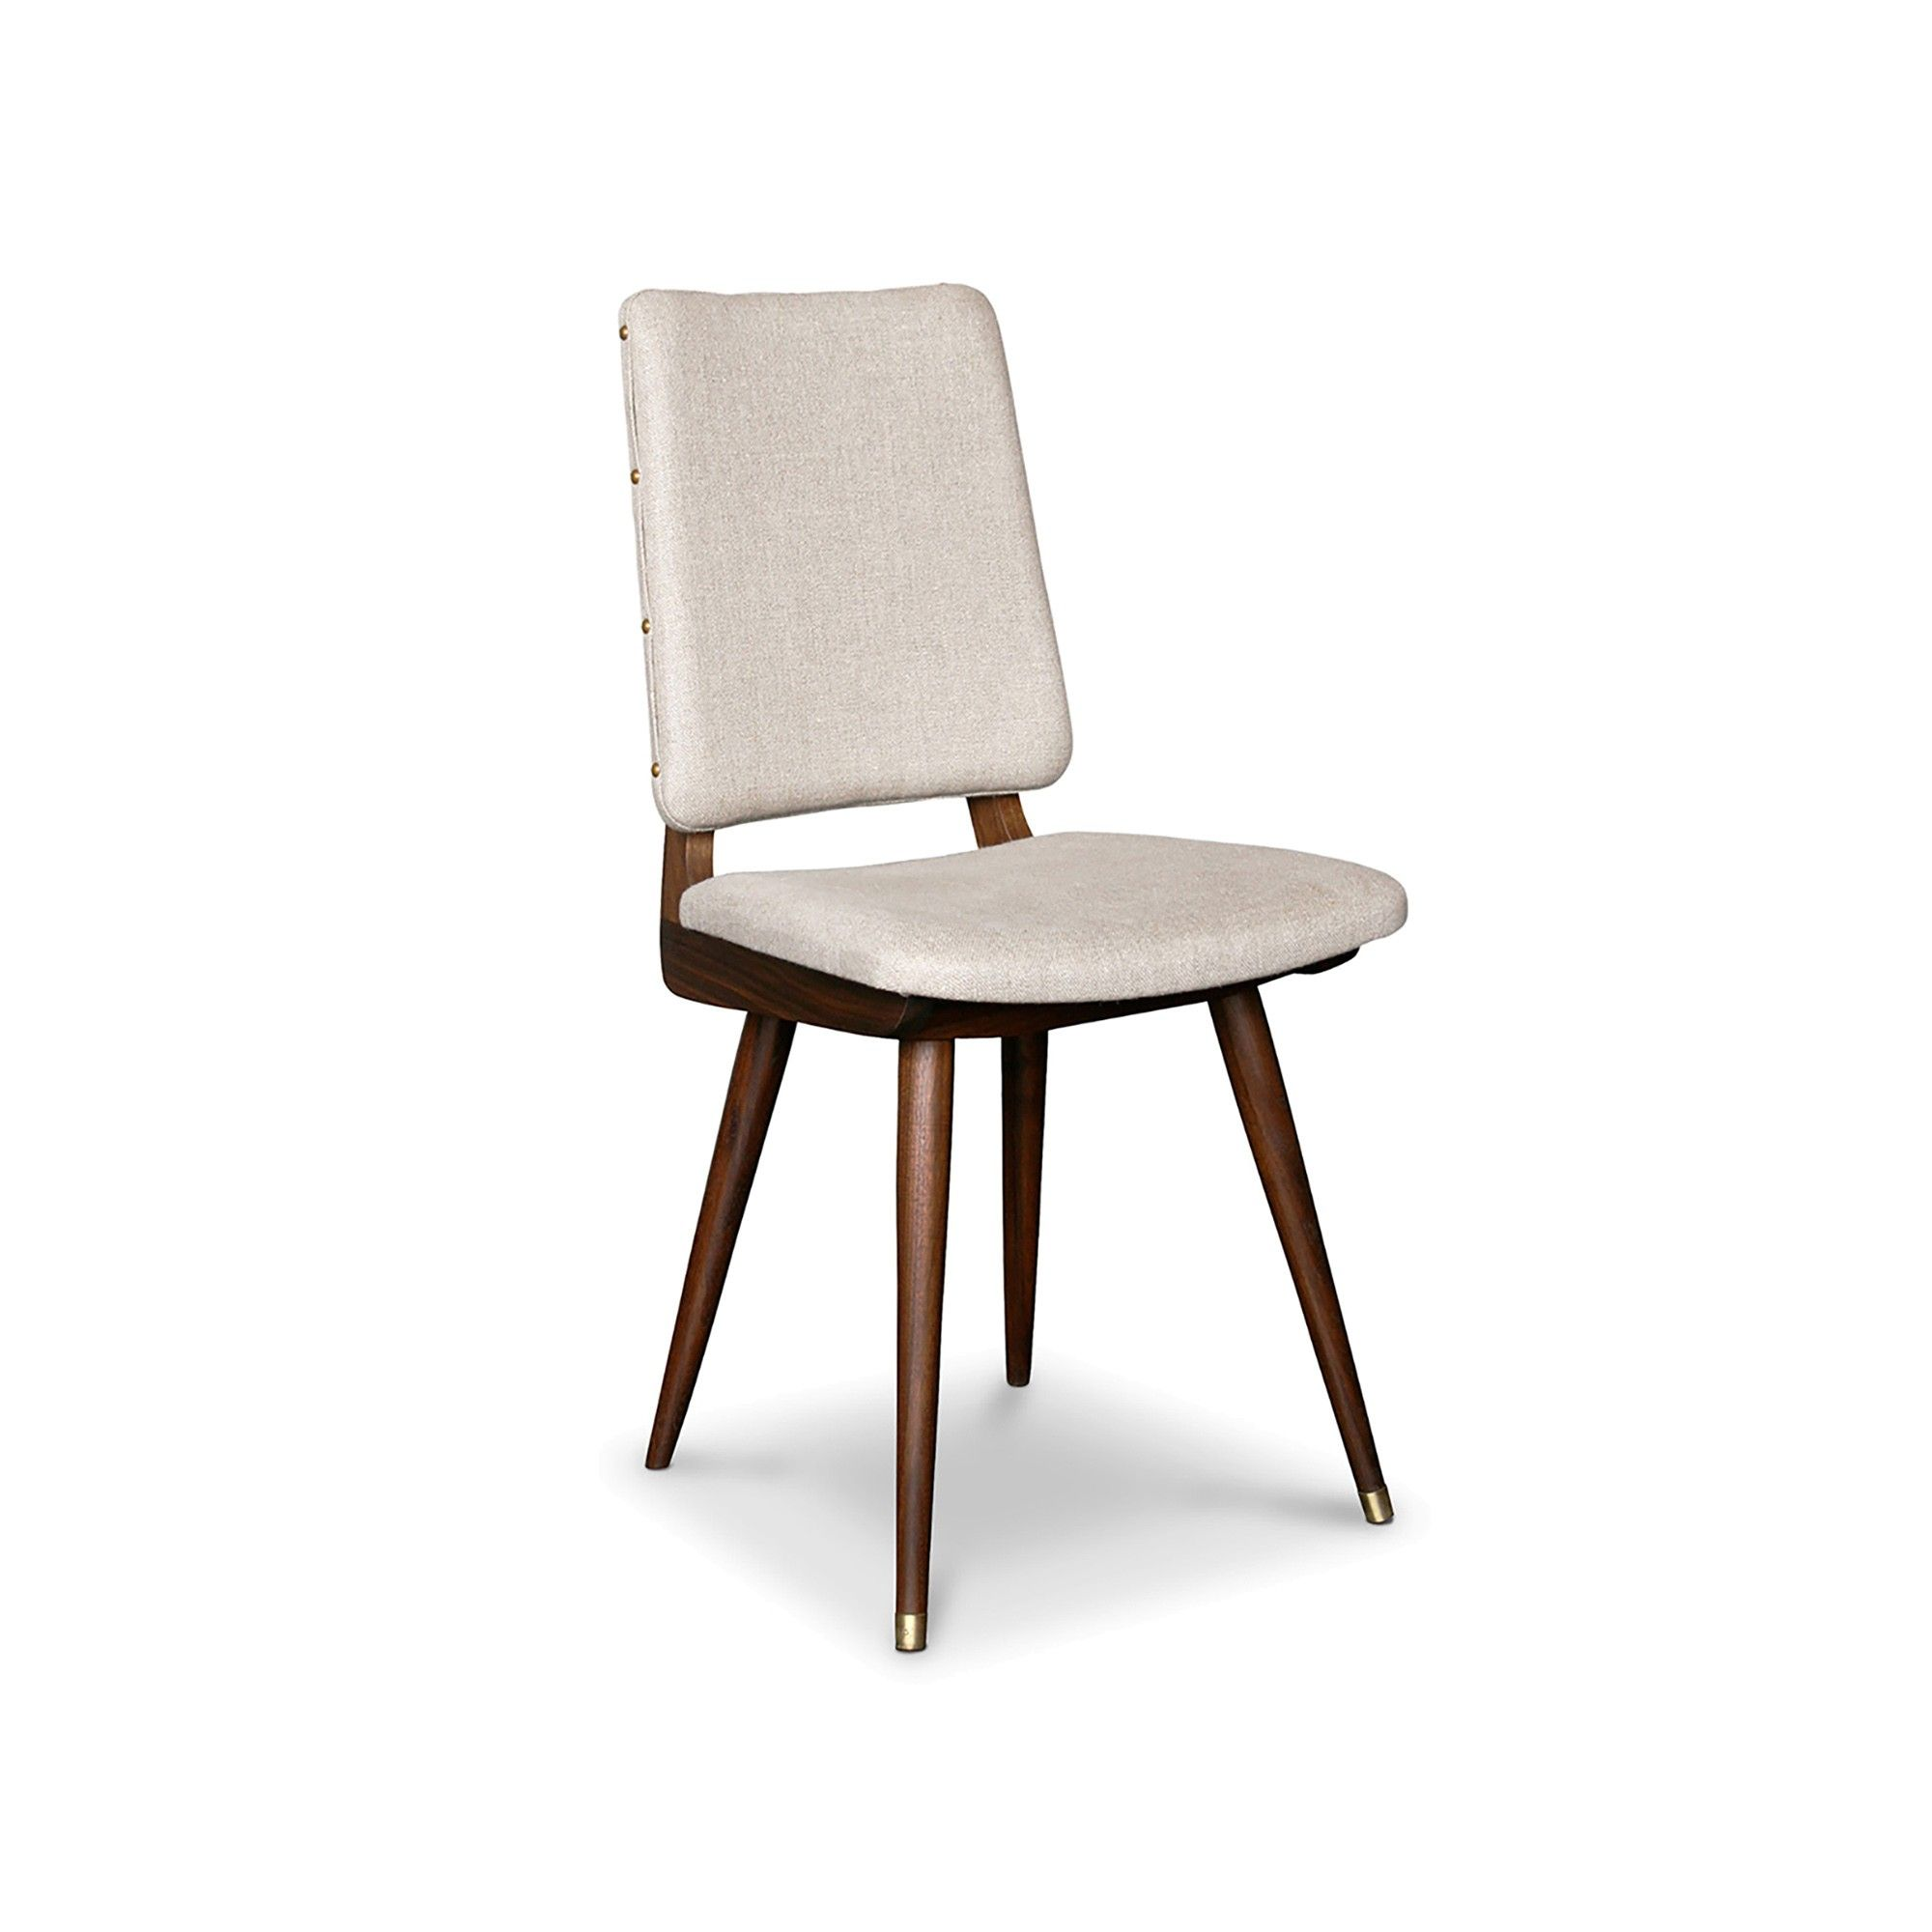 A Petit Side Chair By Jonathan Adler With Small Footprint